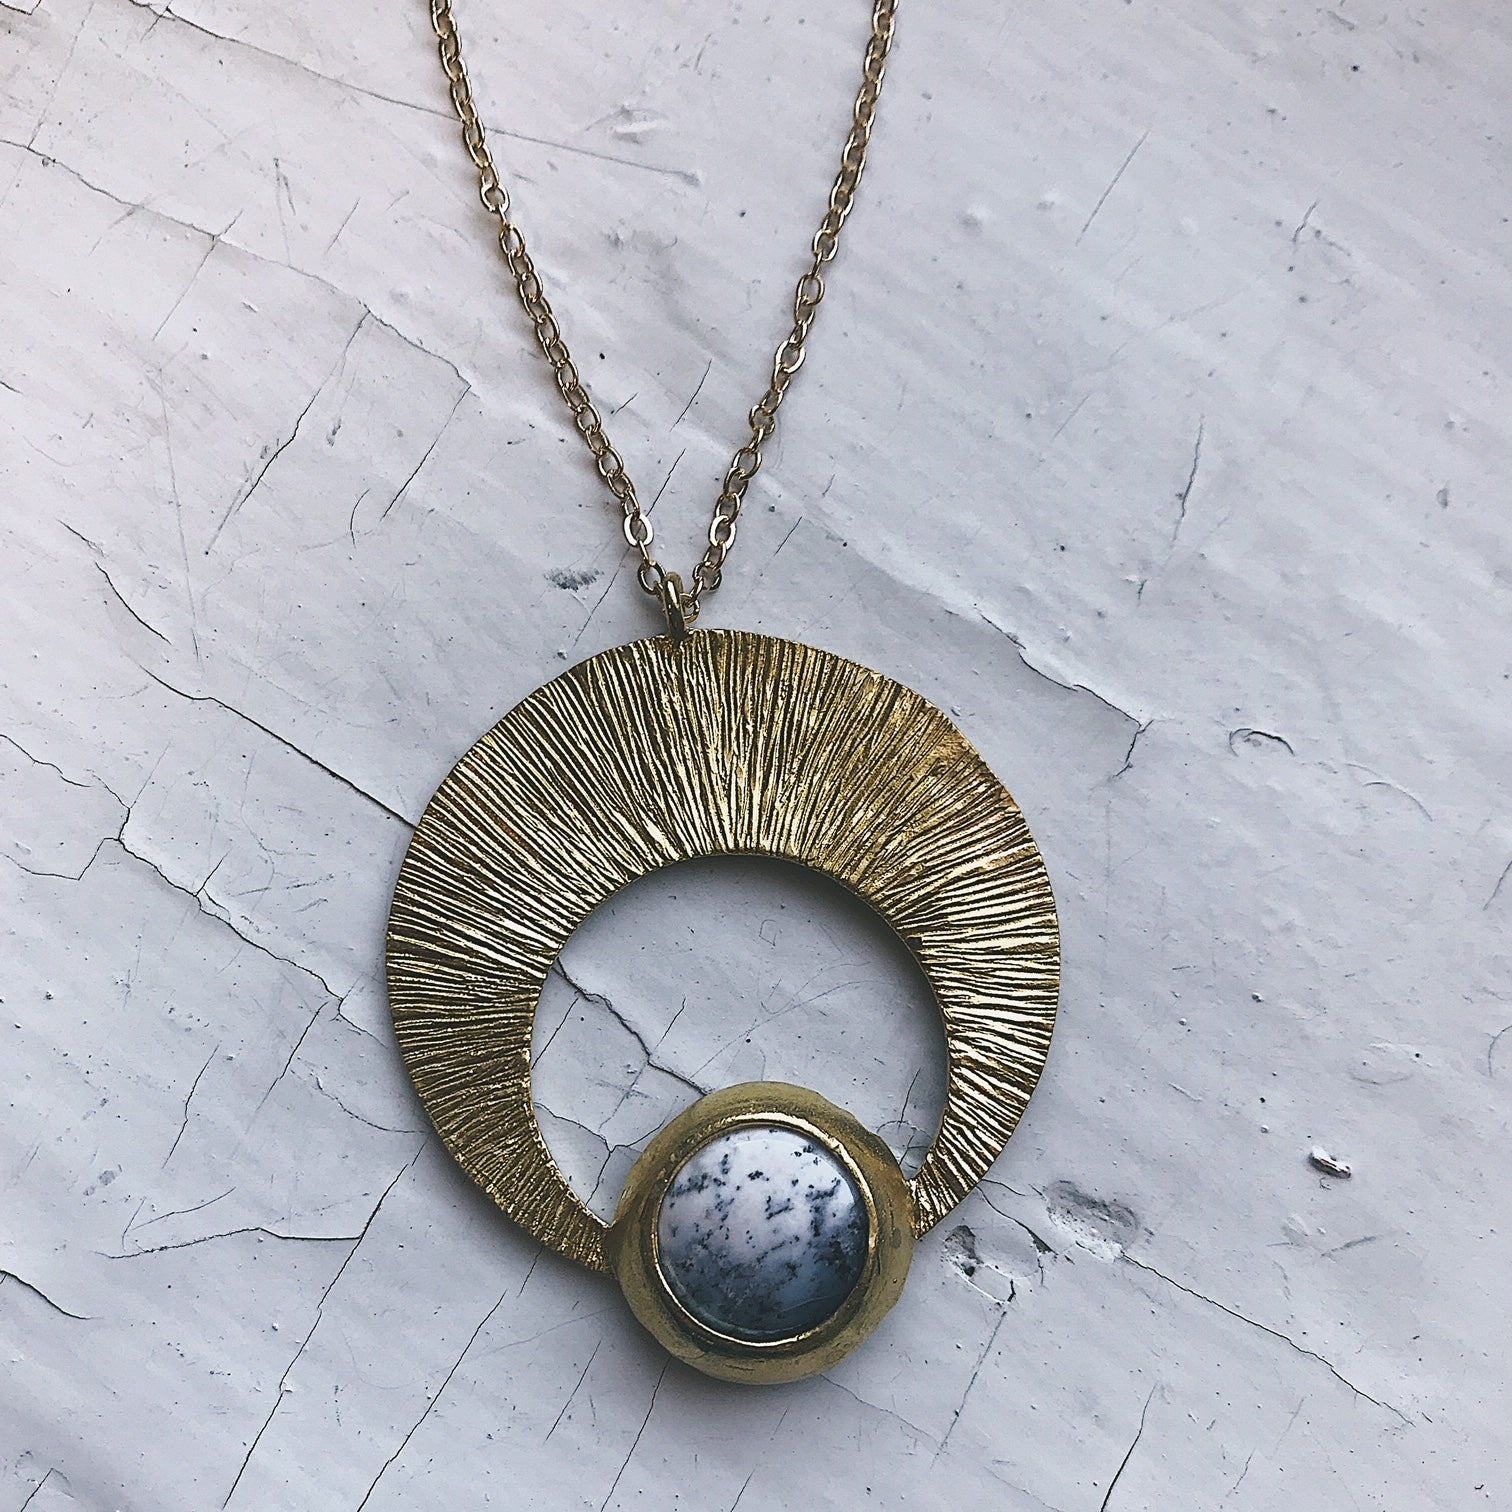 Gold Crescent Moon Pendant - Crescent Shaped Lunar Pendant with Dendritic Agate - Black and White Stone in Raw Brass - Celestial Jewelry by Yugen Tribe